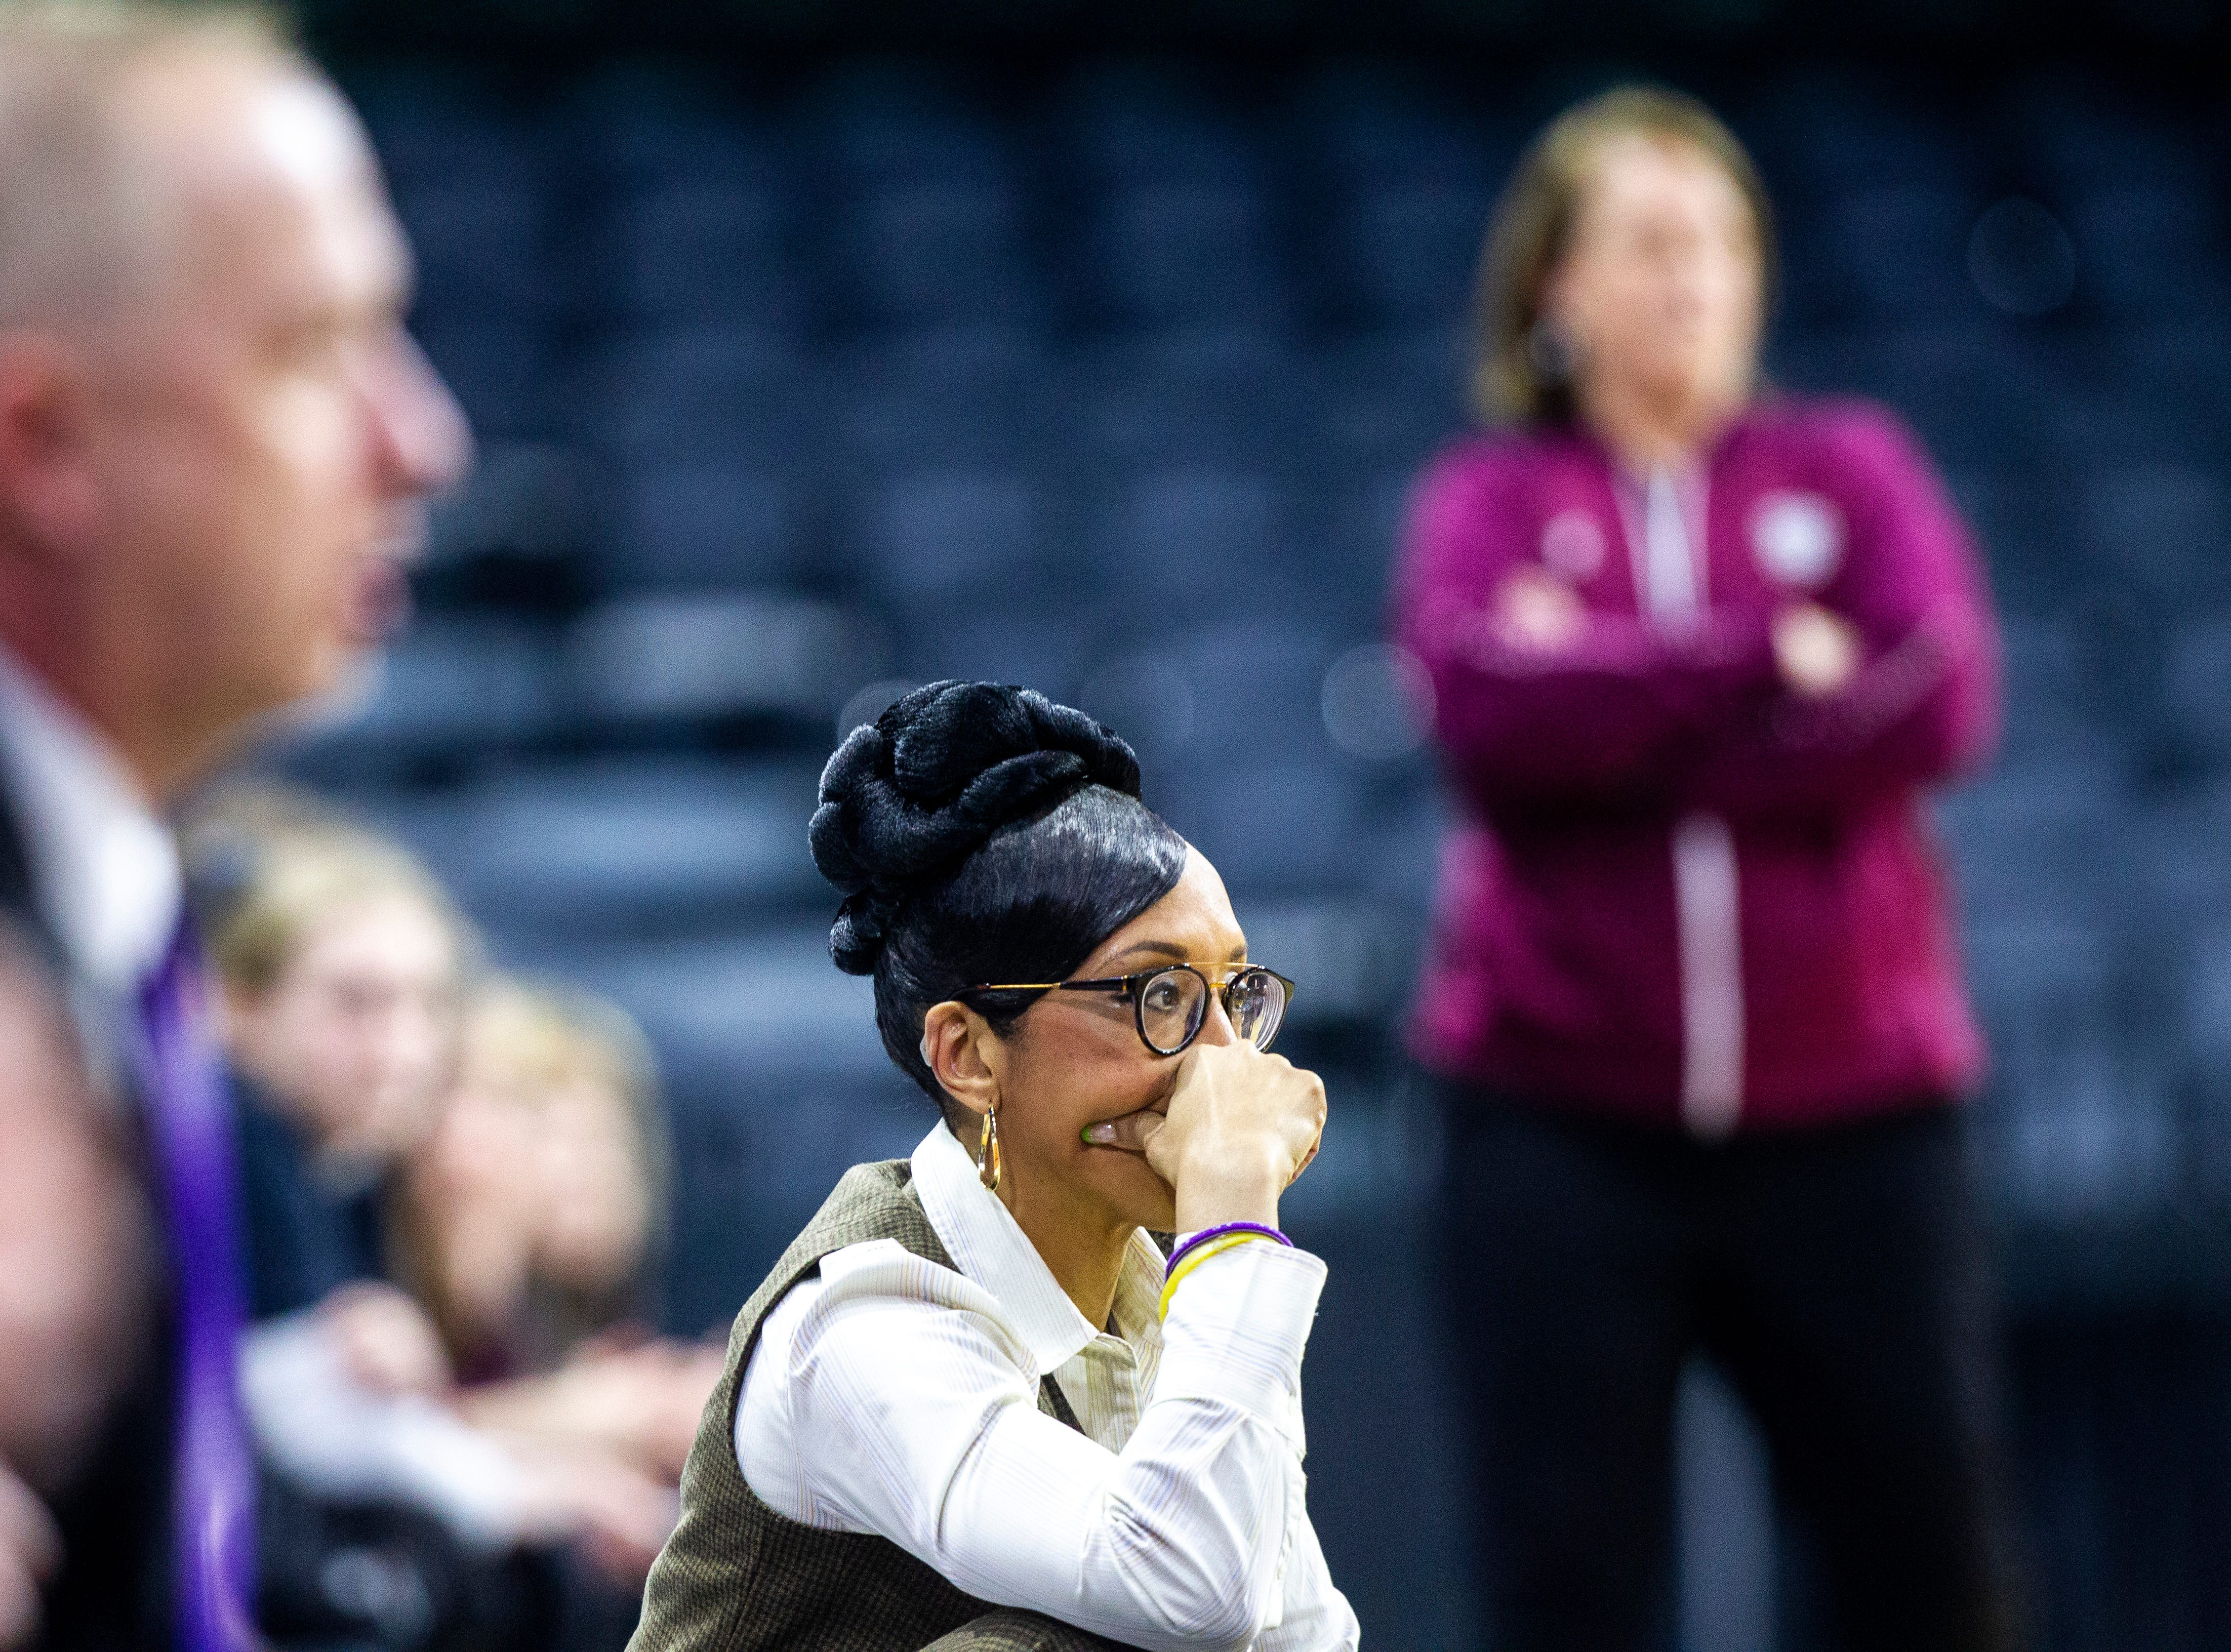 Northern Iowa head coach Tanya Warren, center, looks on during a NCAA Missouri Valley Conference women's basketball quarterfinal tournament game, Friday, March 15, 2019, at the TaxSlayer Center in Moline, Illinois.